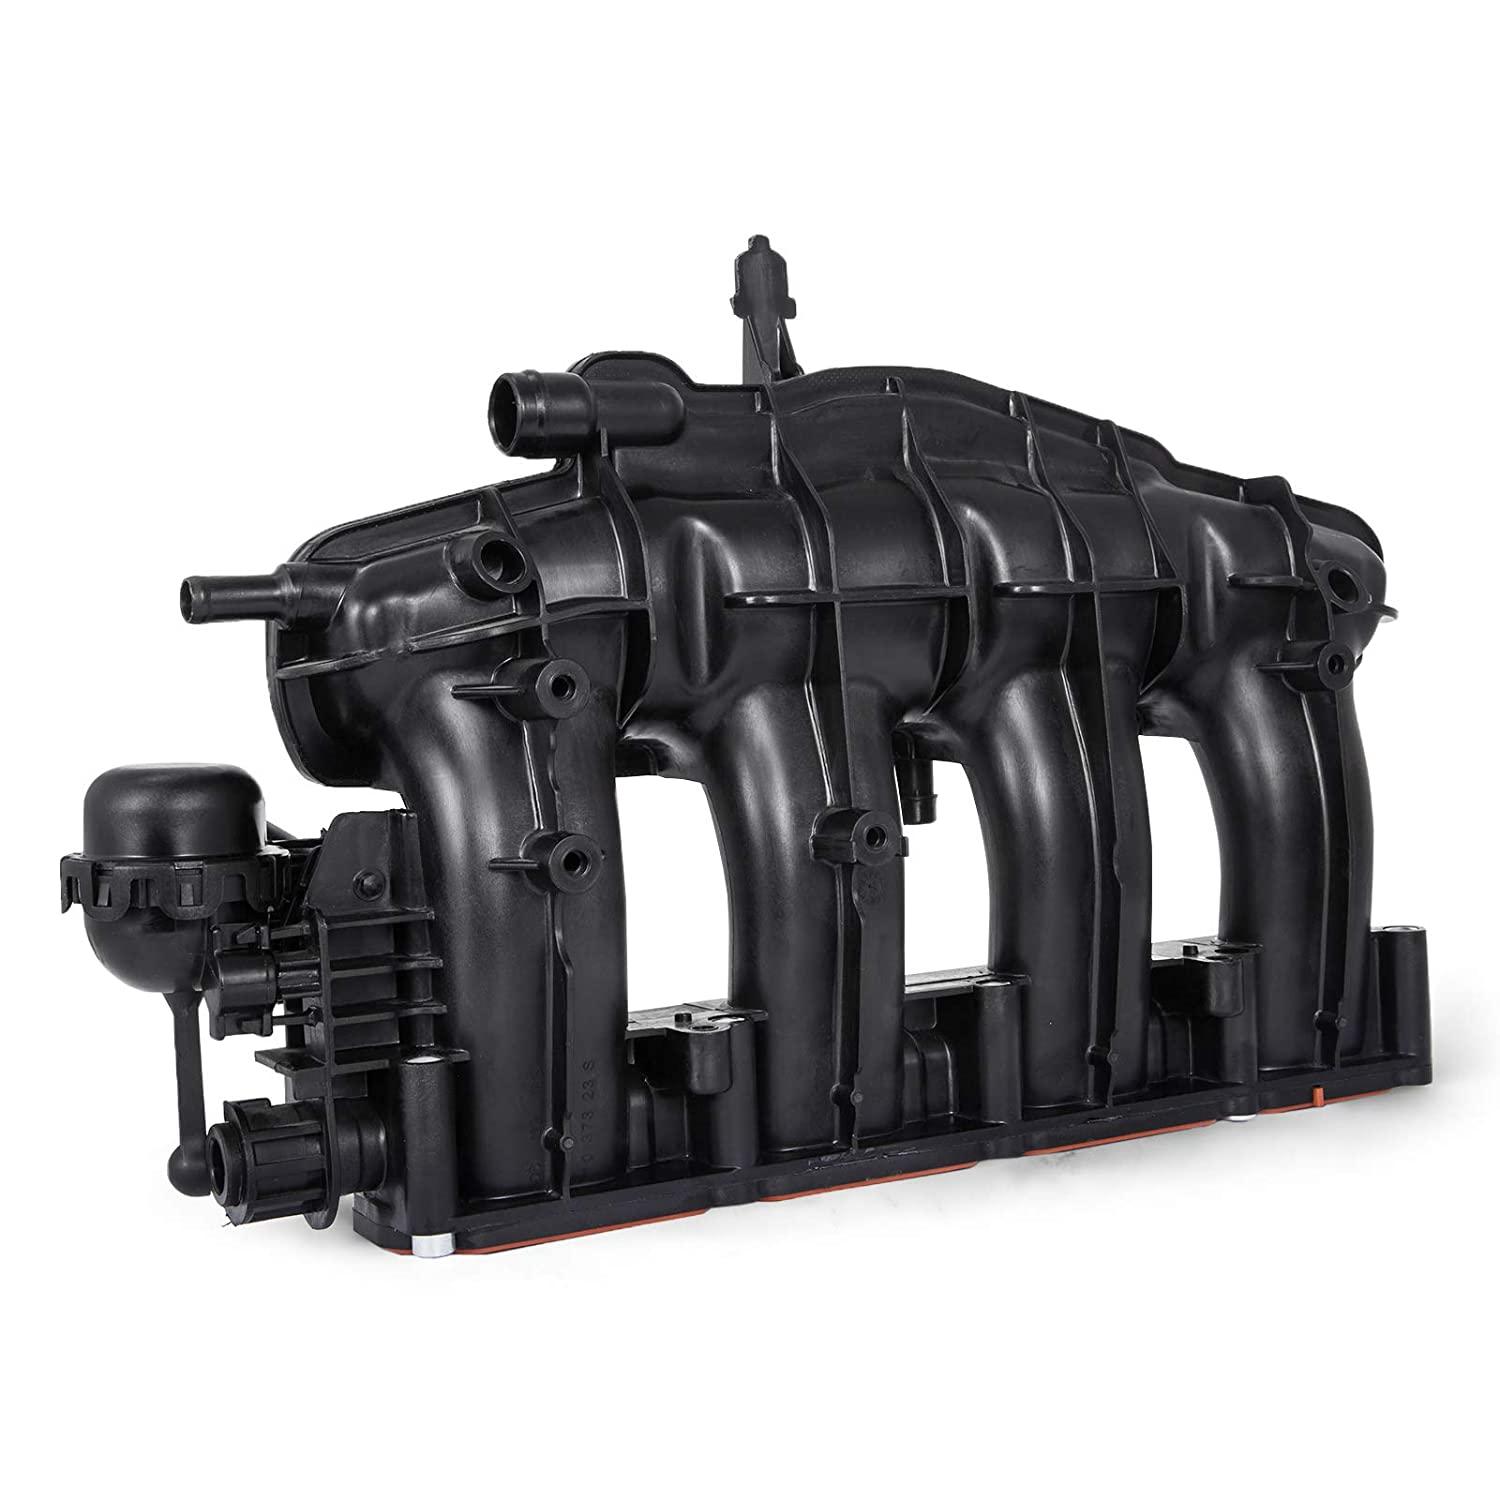 Mophorn Engine Intake Manifold 06J133201AS for 09-15 Audi A3 TT VW GTI Jetta CC Tiguan Beetle 2.0T TSI Genuine Volkswagen Engine Intake 06J133201BH